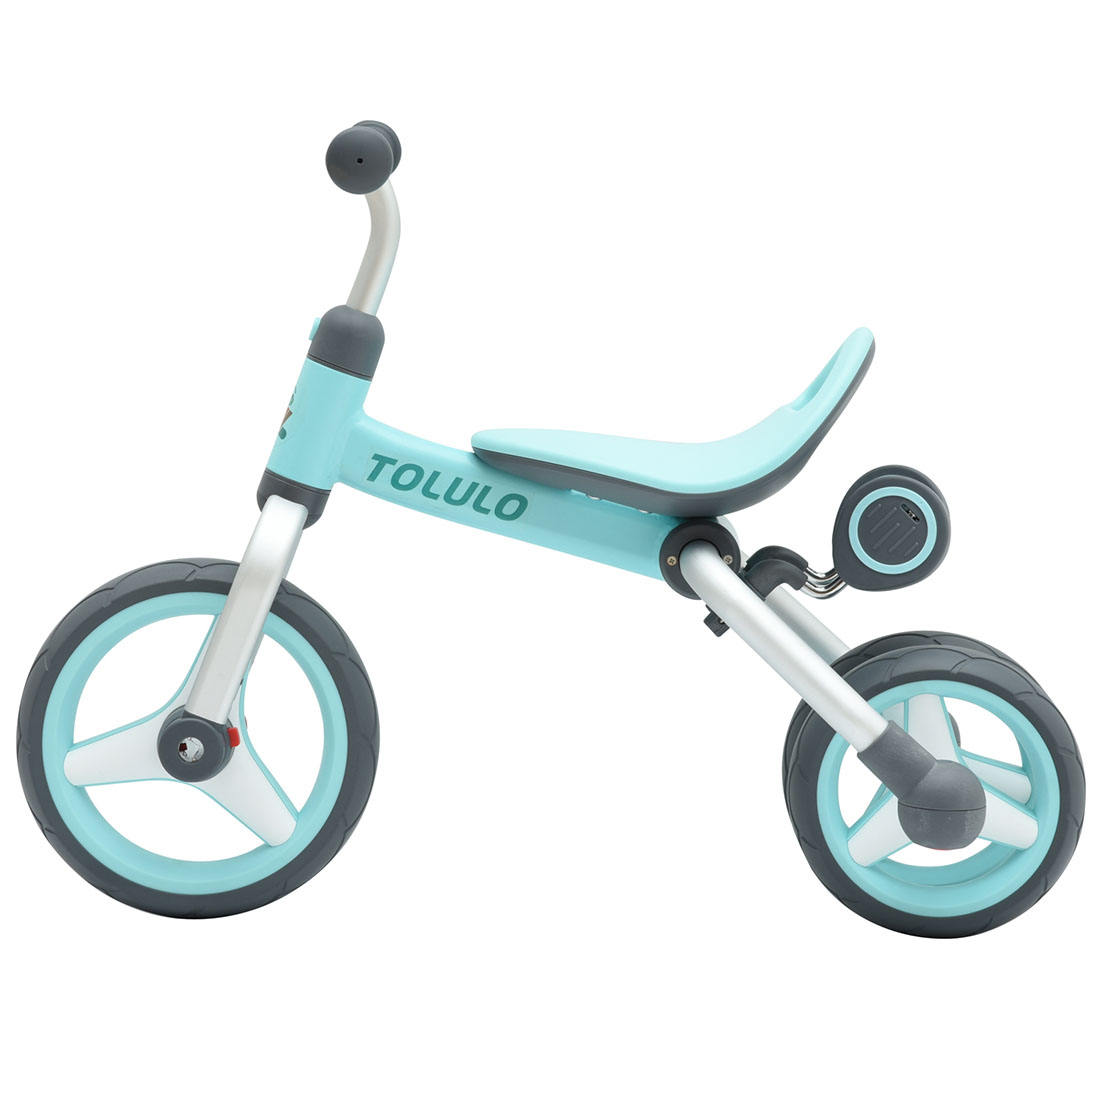 Wholesale kids Multifunction Aluminum Material kiddie bike 3 Wheel Tricycle Child Tricycle For Sale